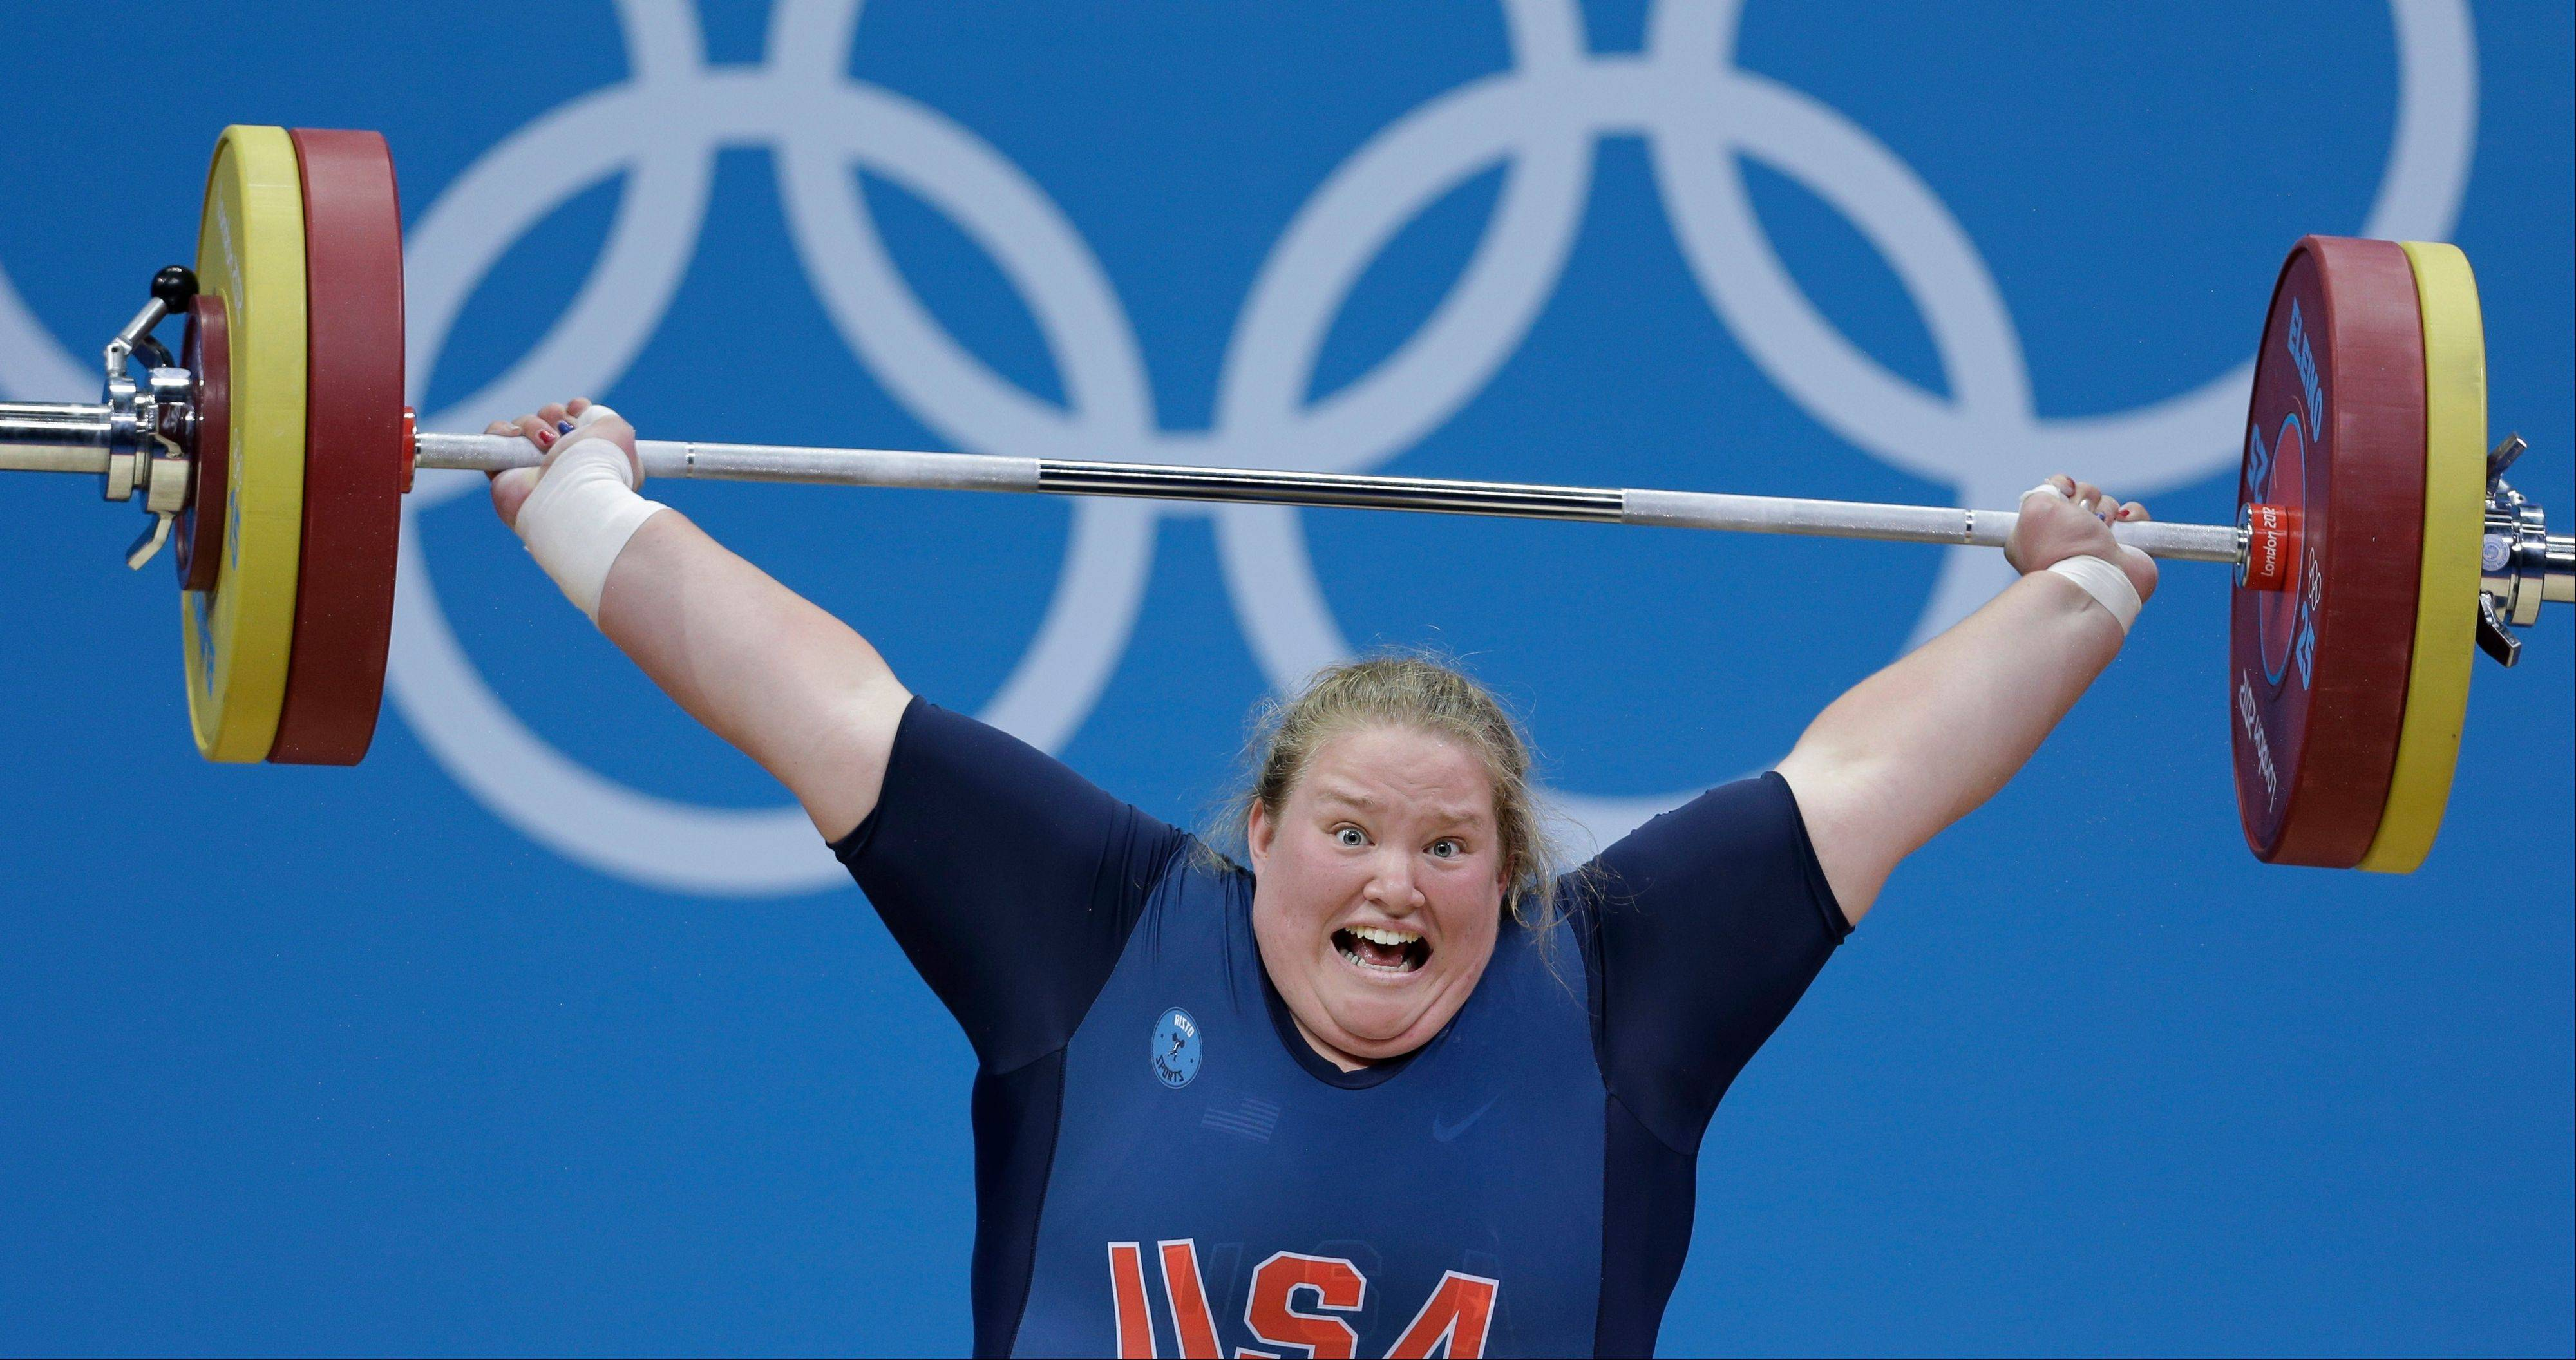 United States' Holley Mangold competes during women's +75-kg, weightlifting competition at the 2012 Summer Olympics, Sunday, Aug. 5, 2012, in London.